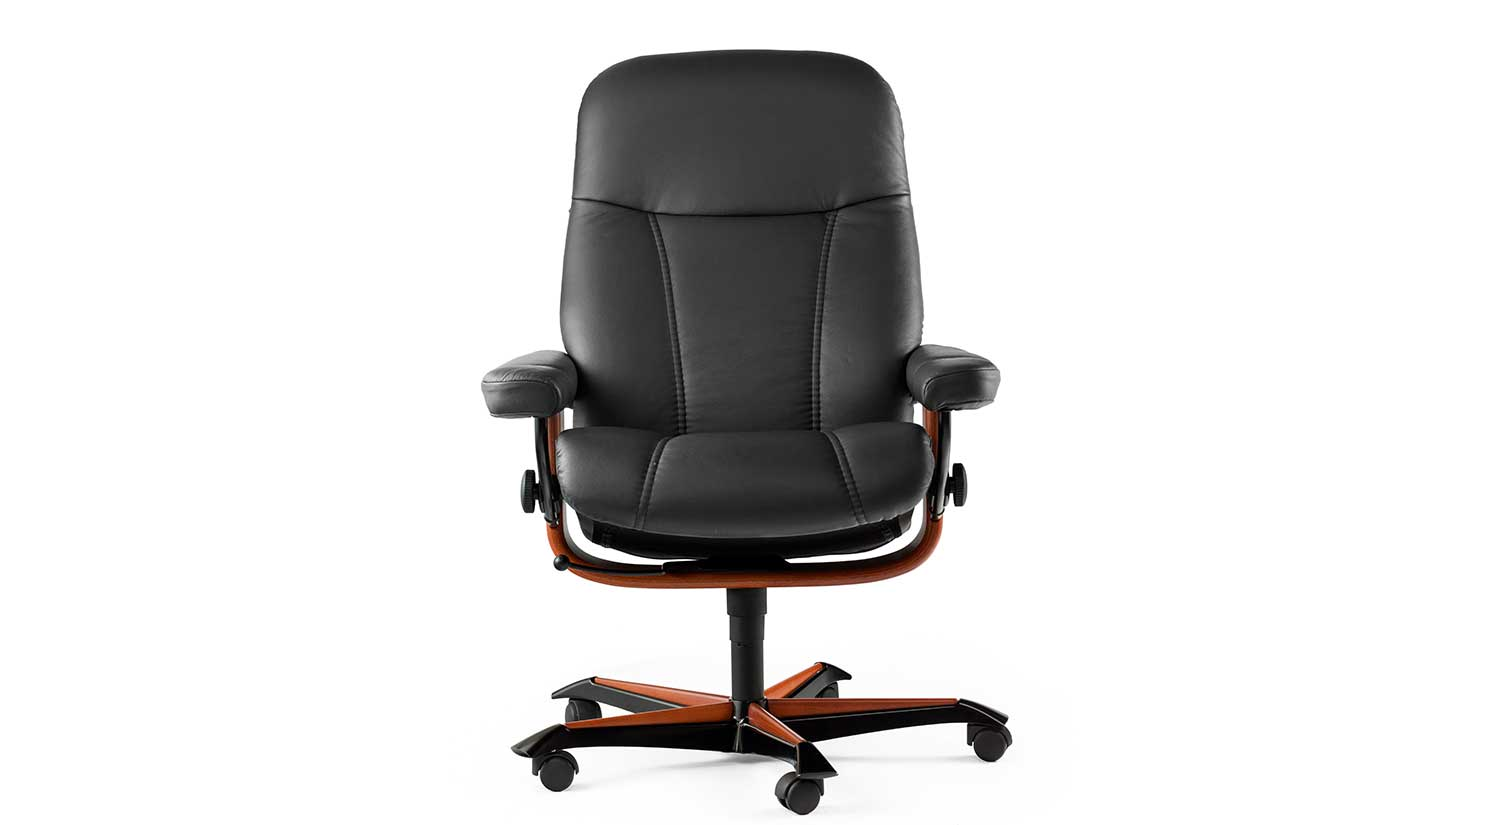 office chair picture. Consul Stressless Office Chair Picture